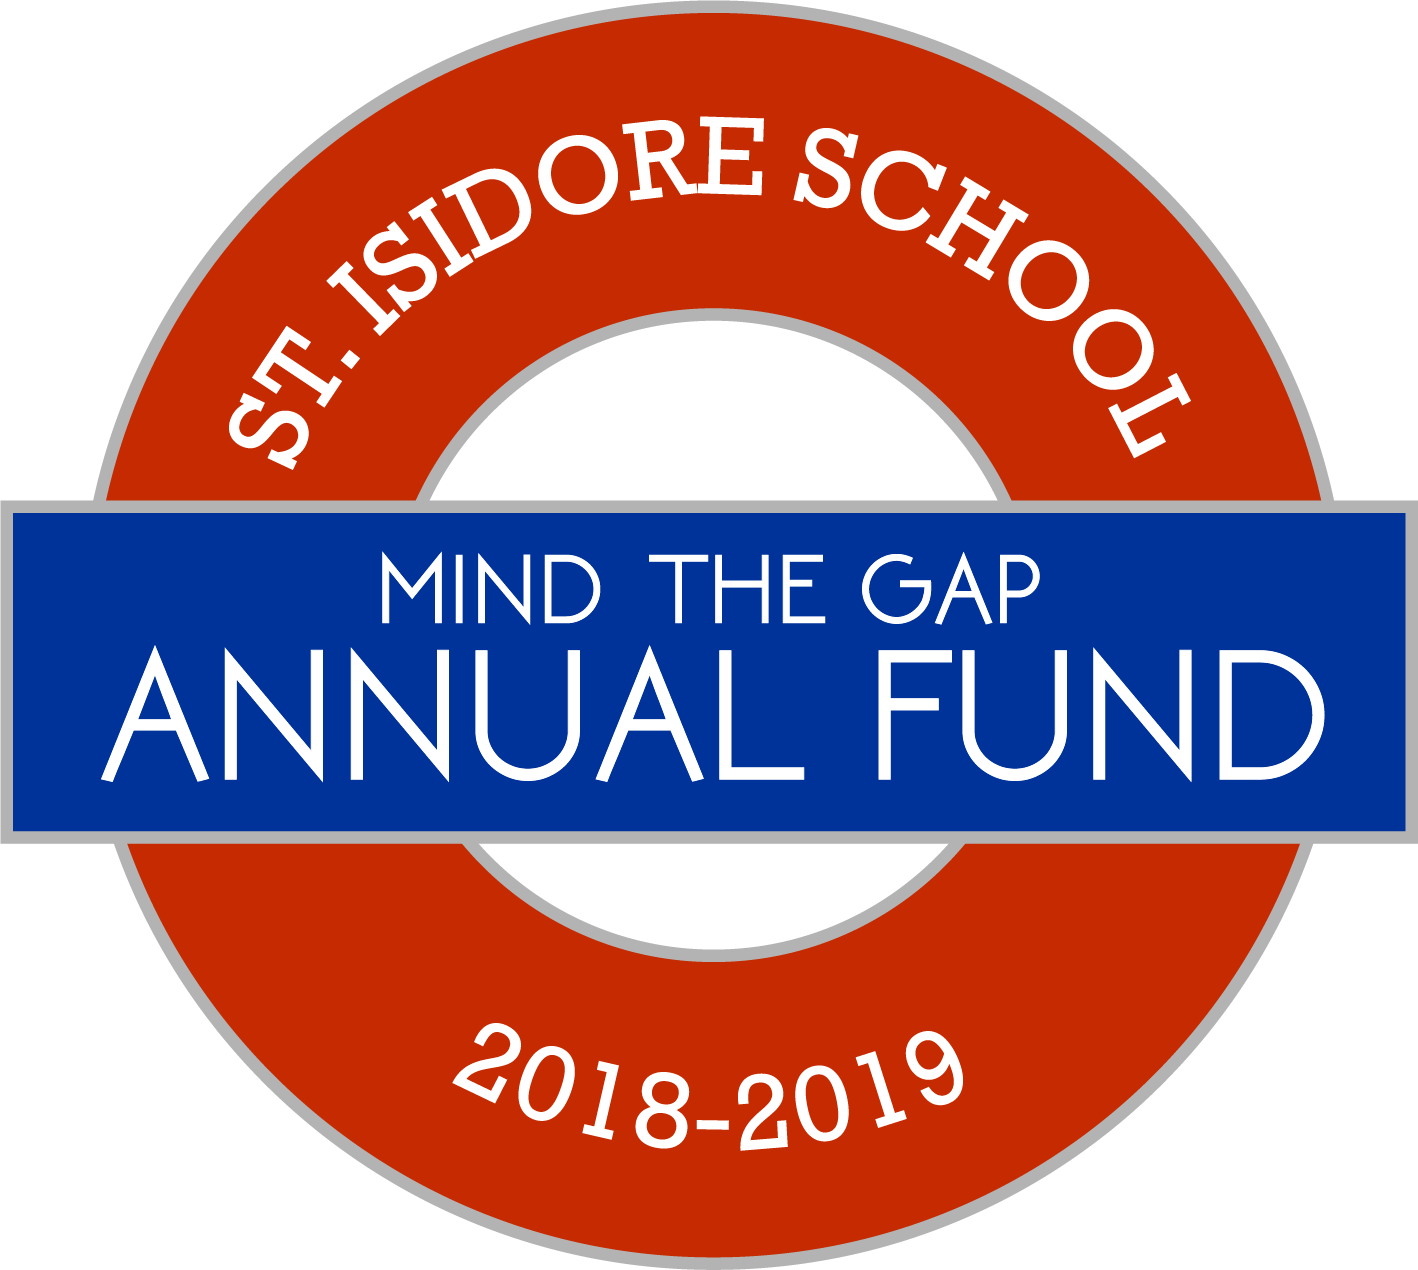 Donate To Mind The Gap Annual Fund St Isidore School